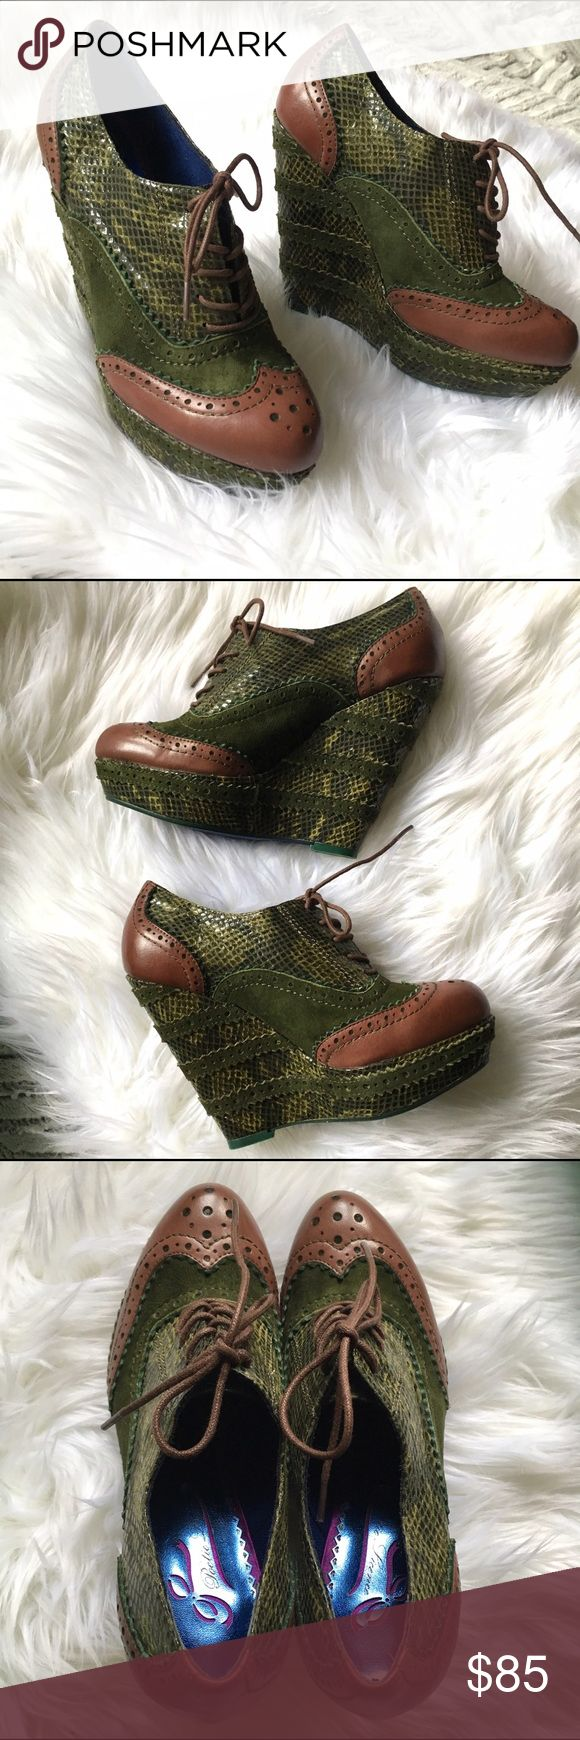 """Poetic License Wild Safari Green Wedge Oxfords Poetic Licence Wild Safari wedge-heel oxford. platform shoe with snake-printed leather upper, fabric lining and lightly cushioned footbed lend interior ease. Has durable rubber sole for lasting wear and reliable stability. Leather. New in Box!  Imported Rubber sole Heel measures approximately 4.5"""" Platform measures approximately 1.25"""" Rubber sole Fabric lining Covered heel Lightly cushioned footbed Snake-printed leather upper Poetic License…"""